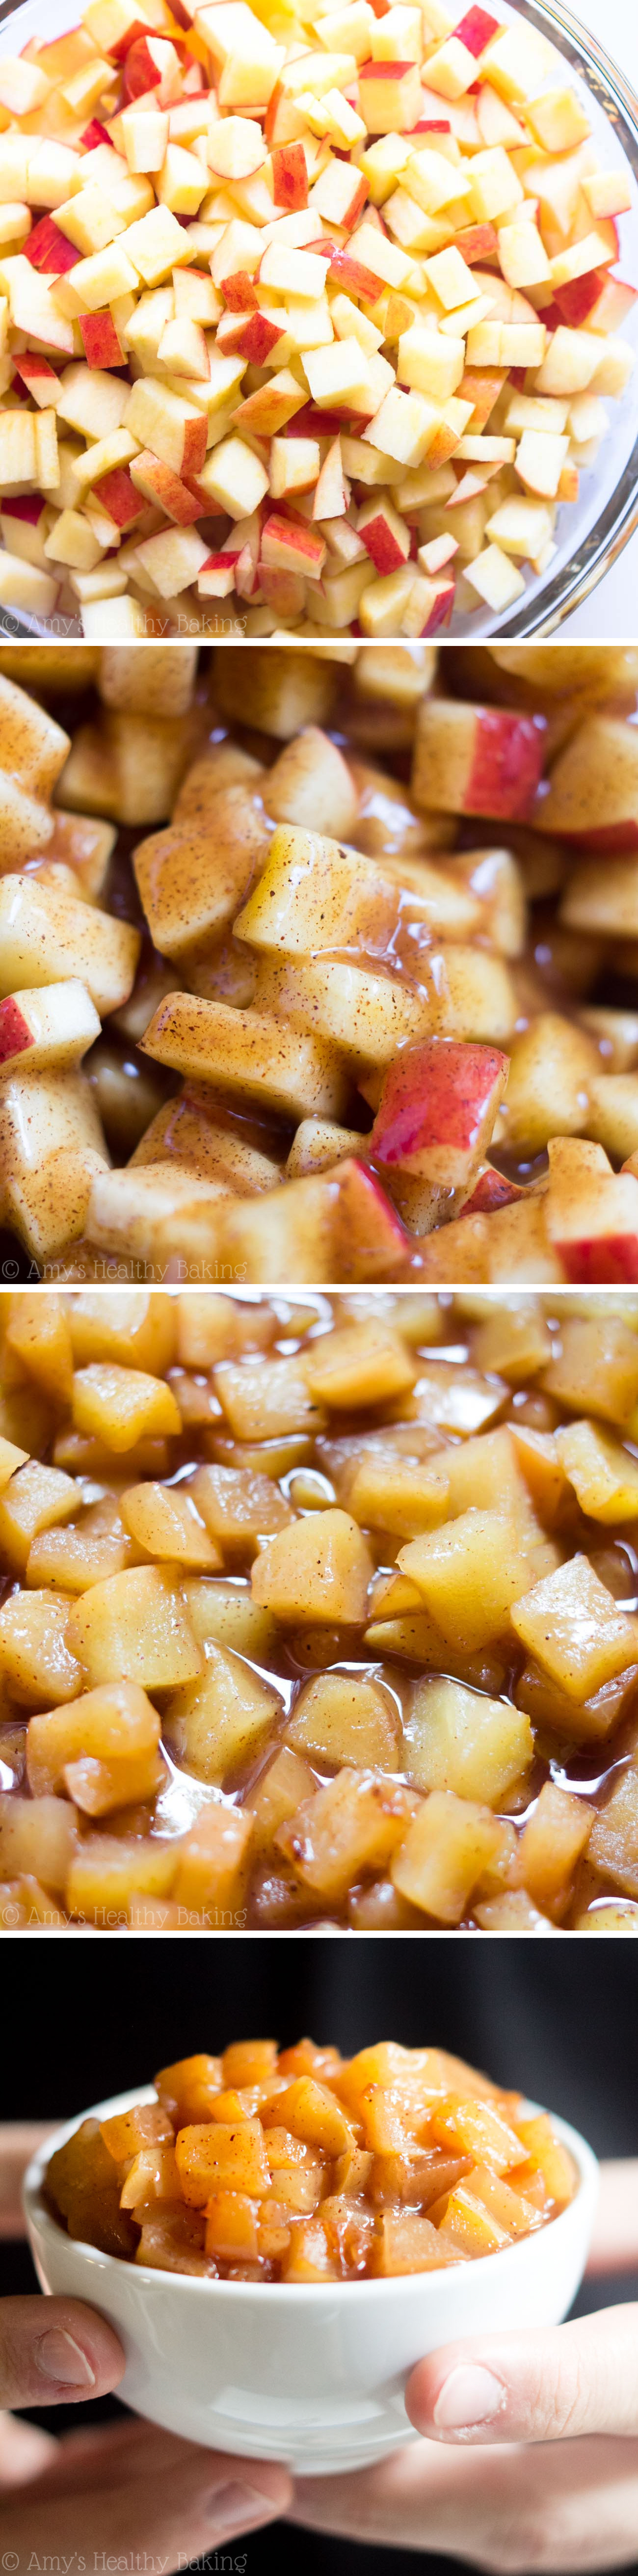 Slow Cooker Apple Recipes Healthy  slow cooker apple recipes healthy